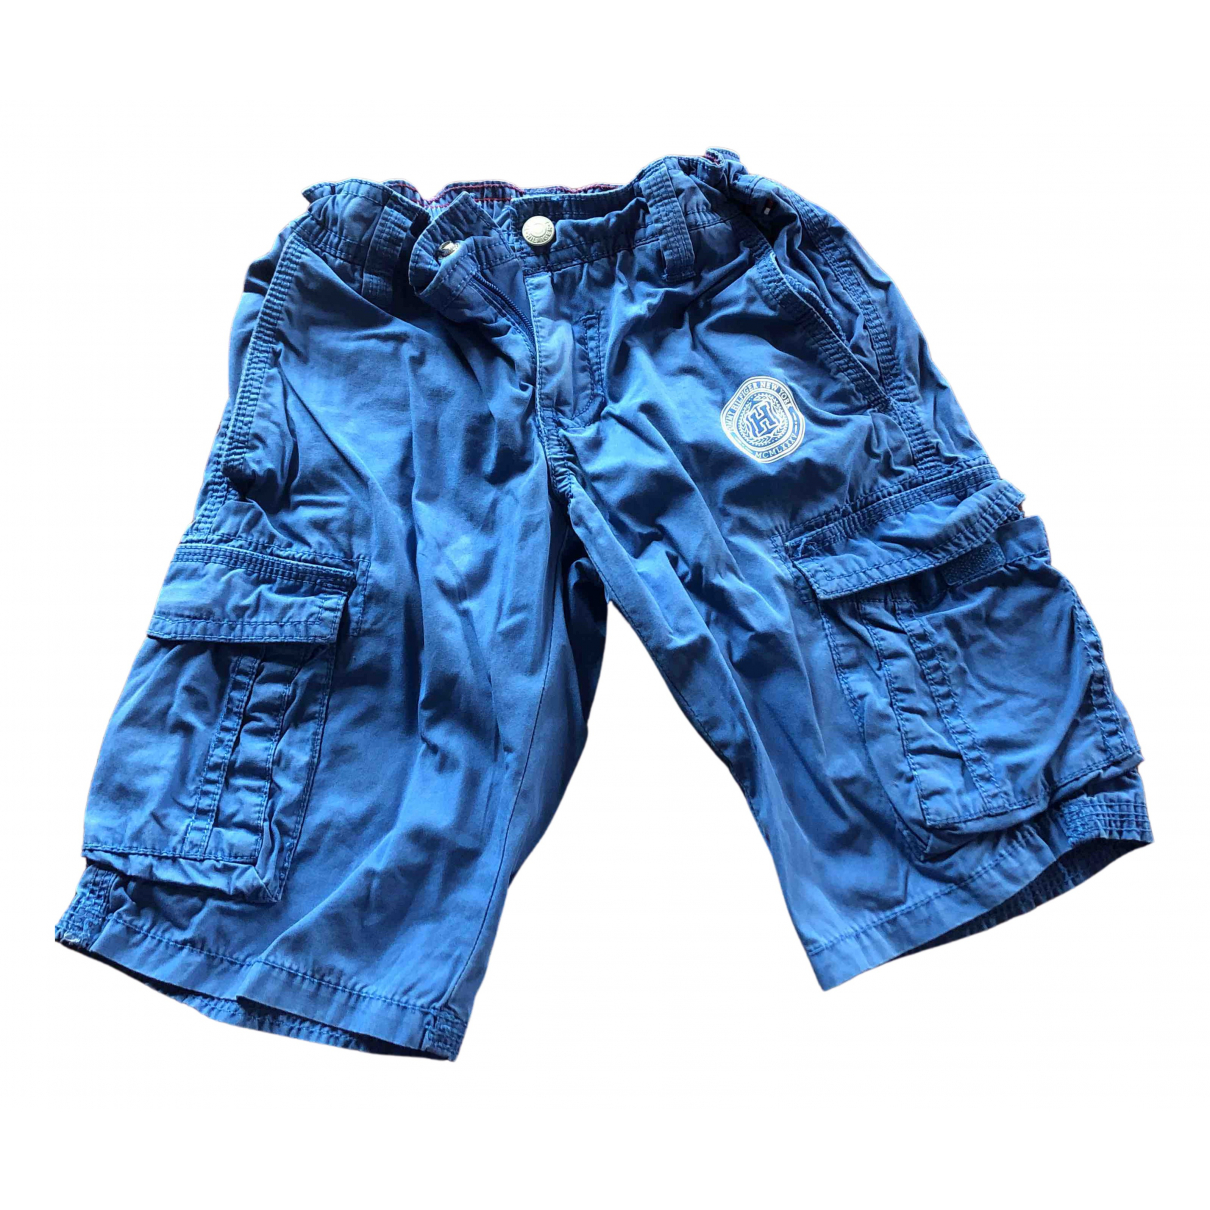 Tommy Hilfiger N Blue Cotton Shorts for Kids 5 years - up to 108cm FR